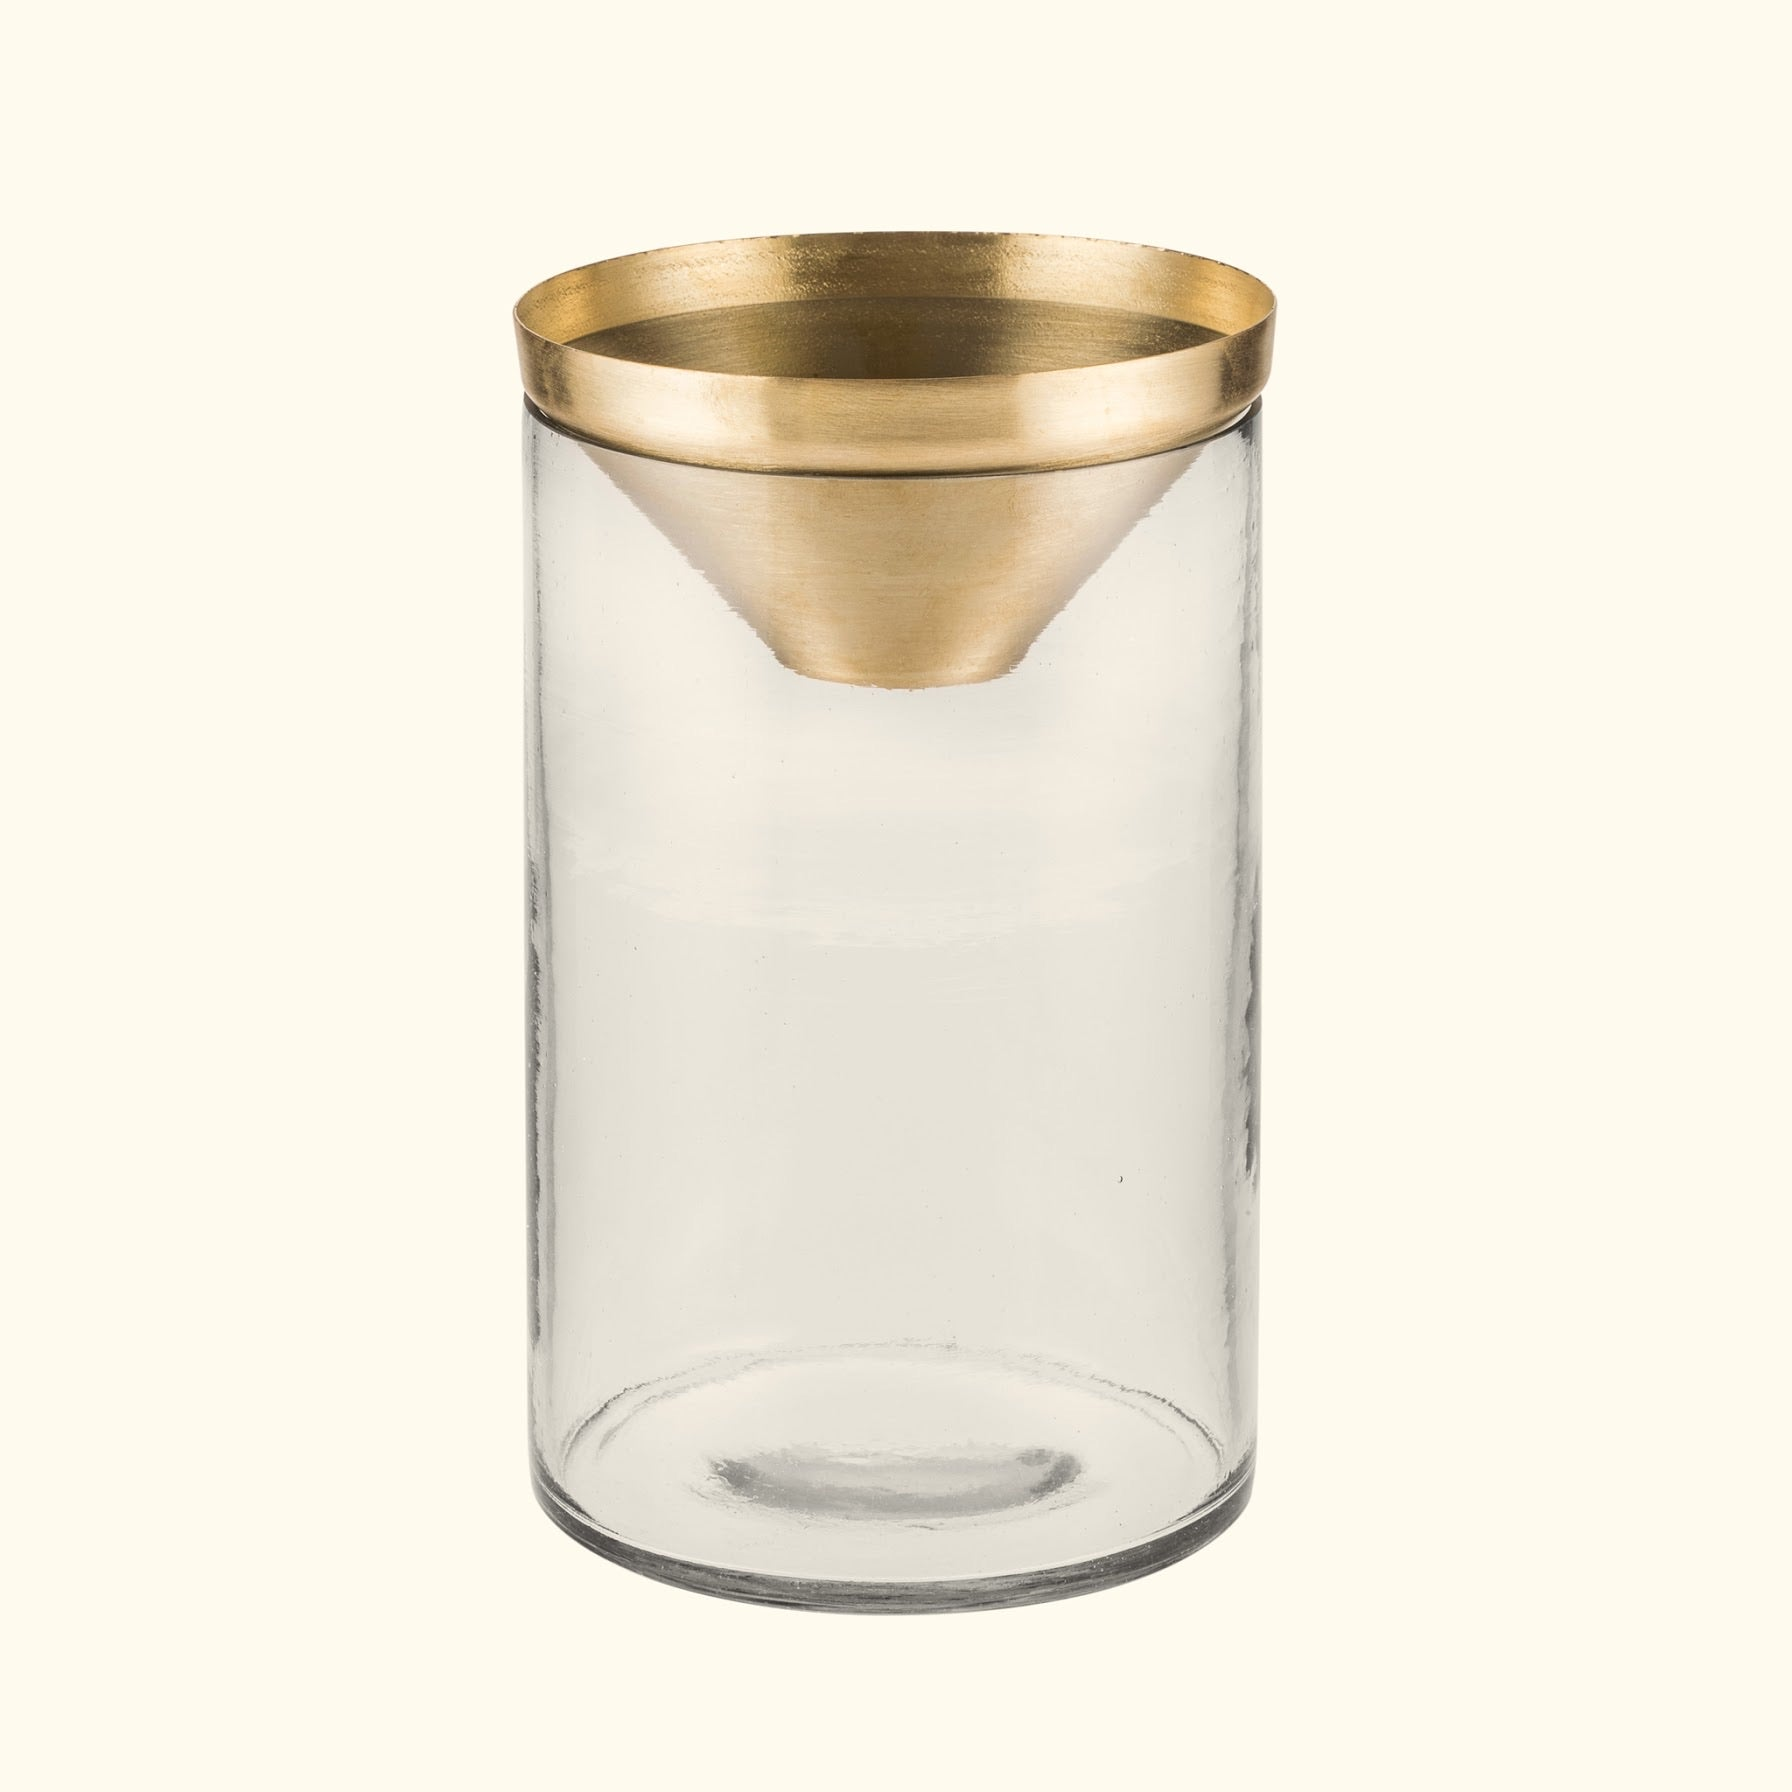 ZAKKIA Botanical Vase - Large Brass